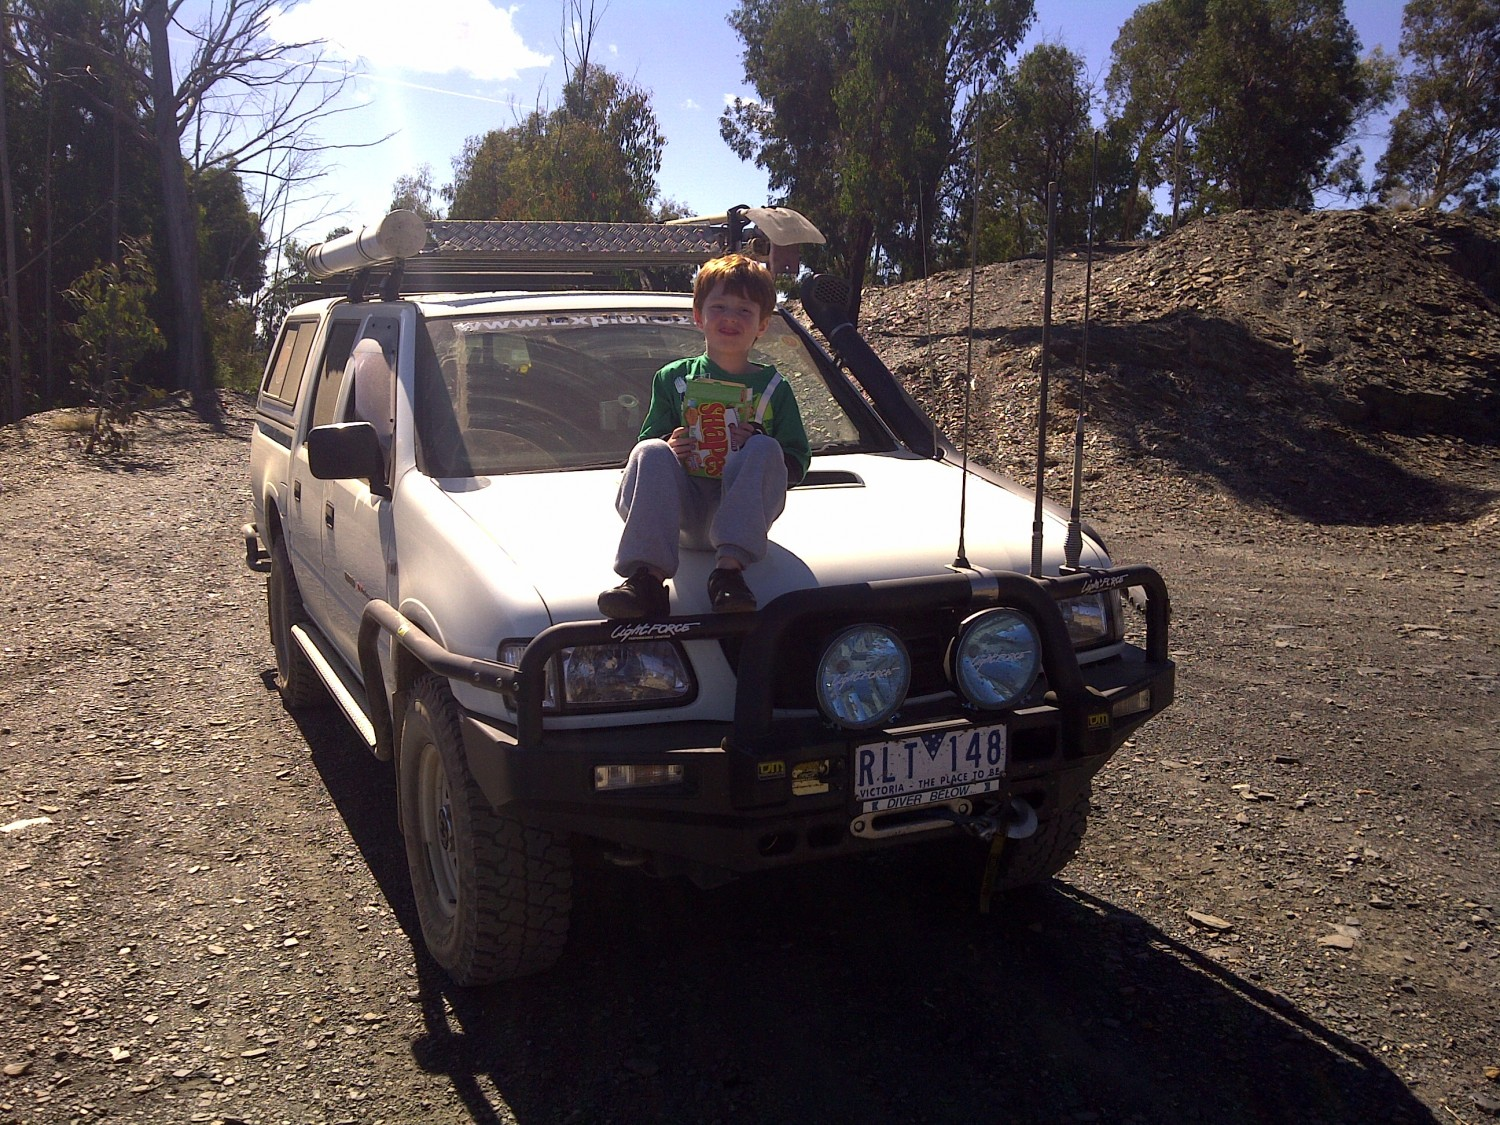 2001 Holden RODEO (4x4) - Dale1969 - Shannons Club